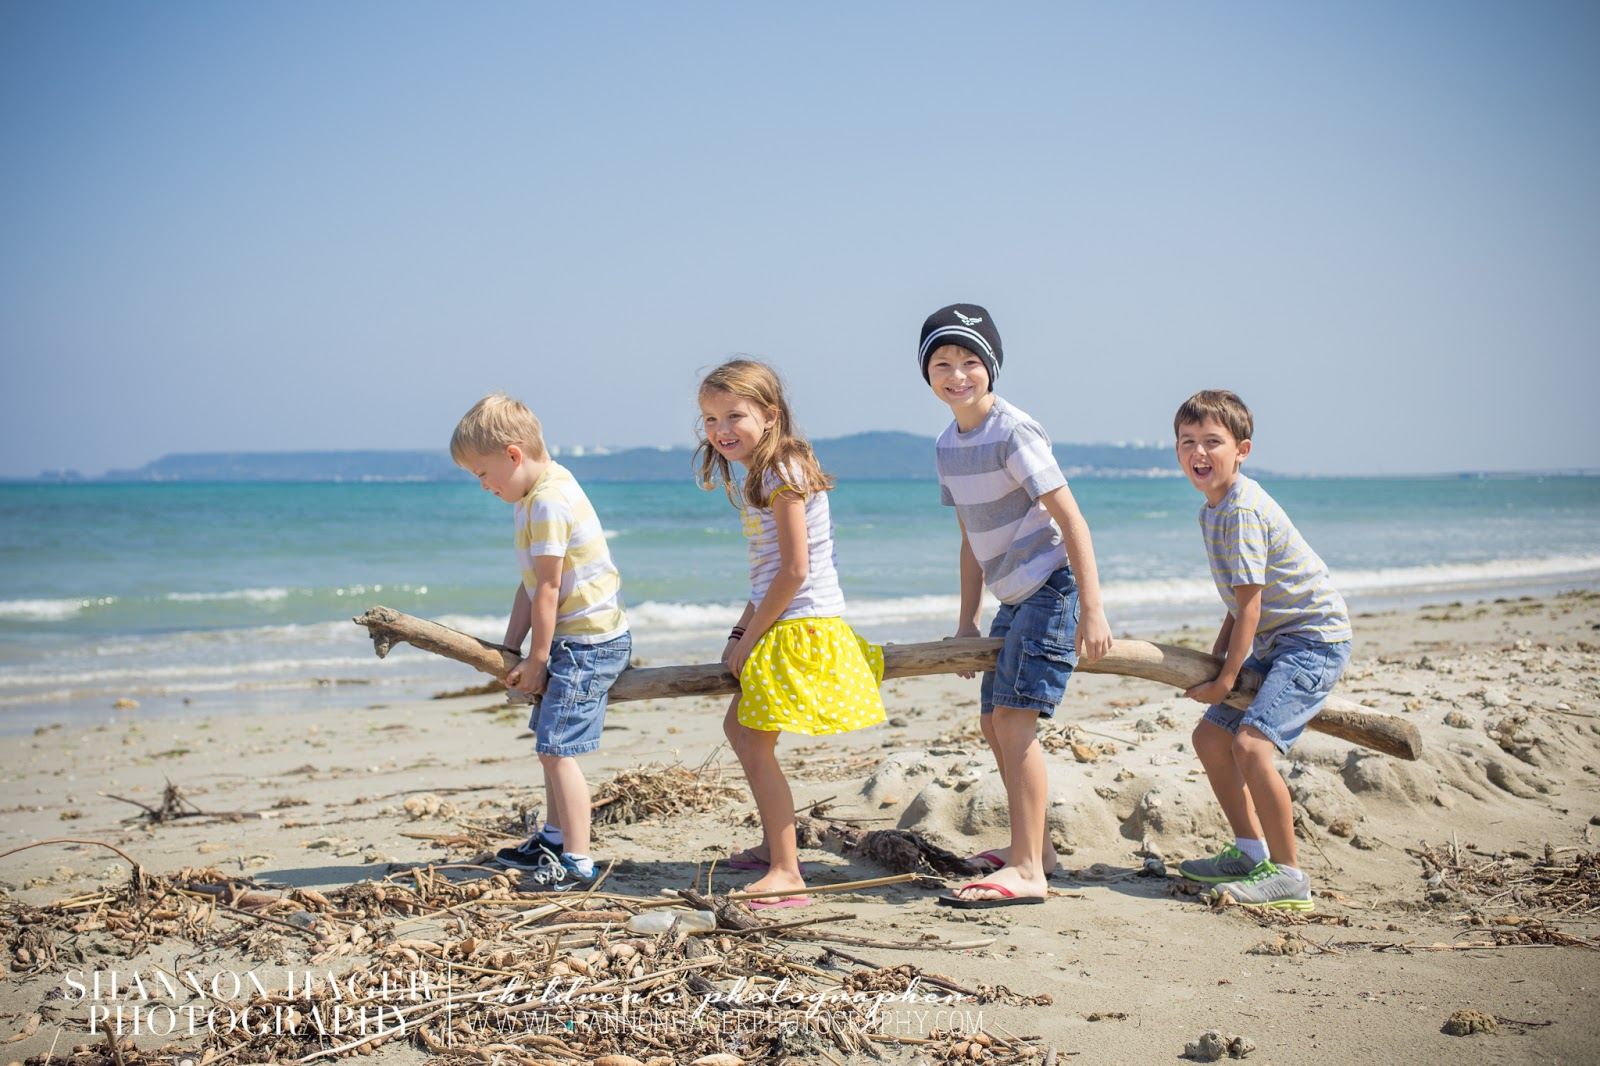 Children's Photography by Shannon Hager Photography, Beach